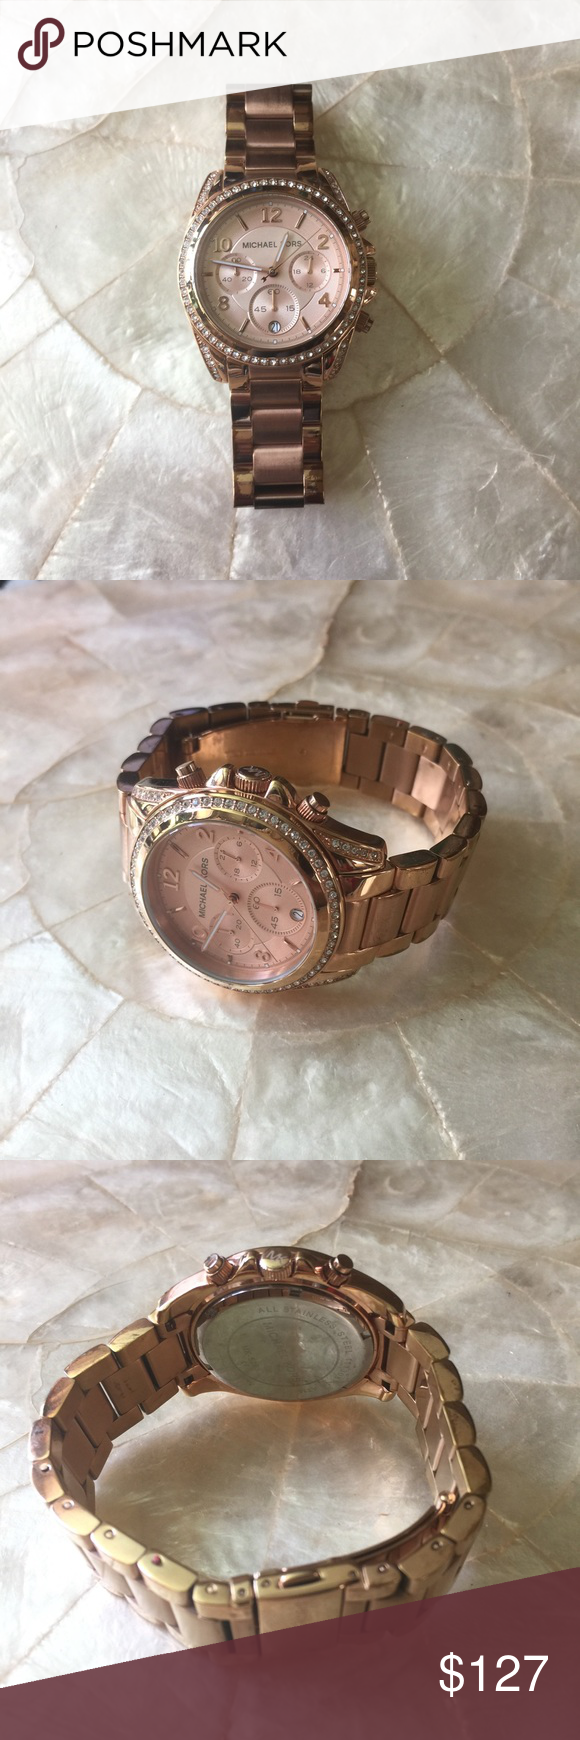 f3ccbcc59be0 Michael Kors Blair Rose Gold Ladies Watch MK5263 100% authentic Michael  Kors Blair rose gold chronograph watch. Luminescent hands.